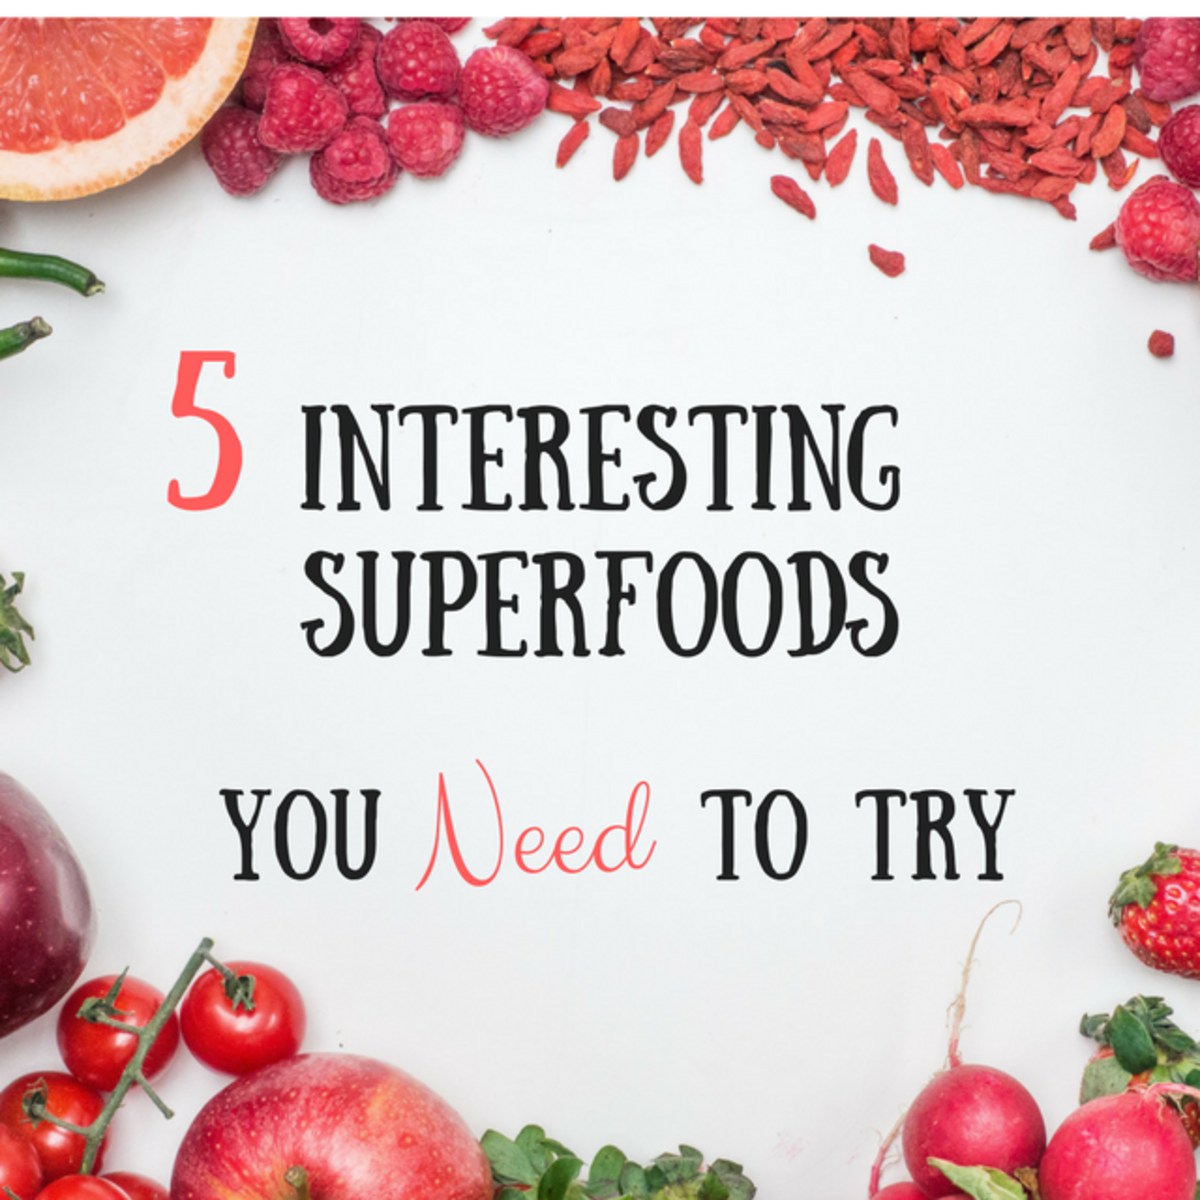 5 Interesting Superfoods You Need to Try